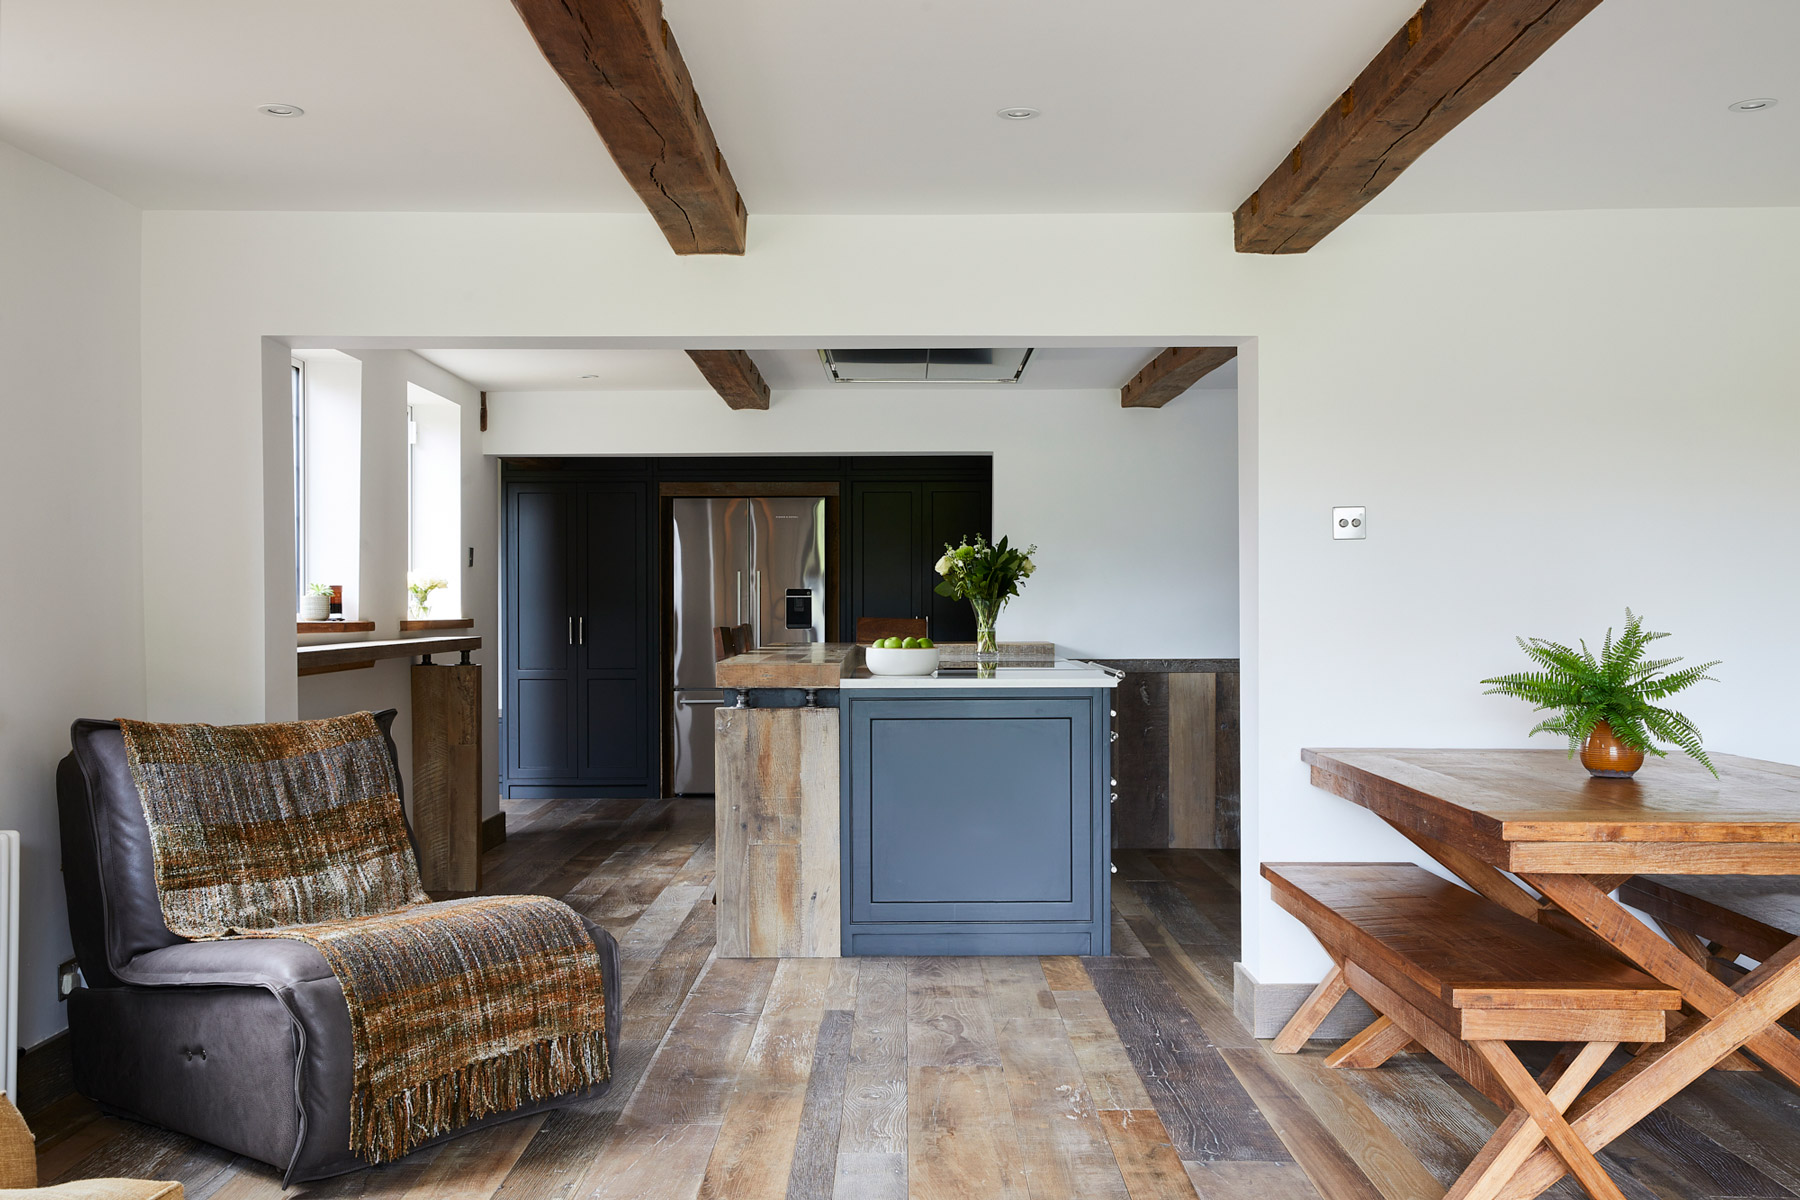 Open plan kitchen with reclaimed flooring and bespoke painted kitchen